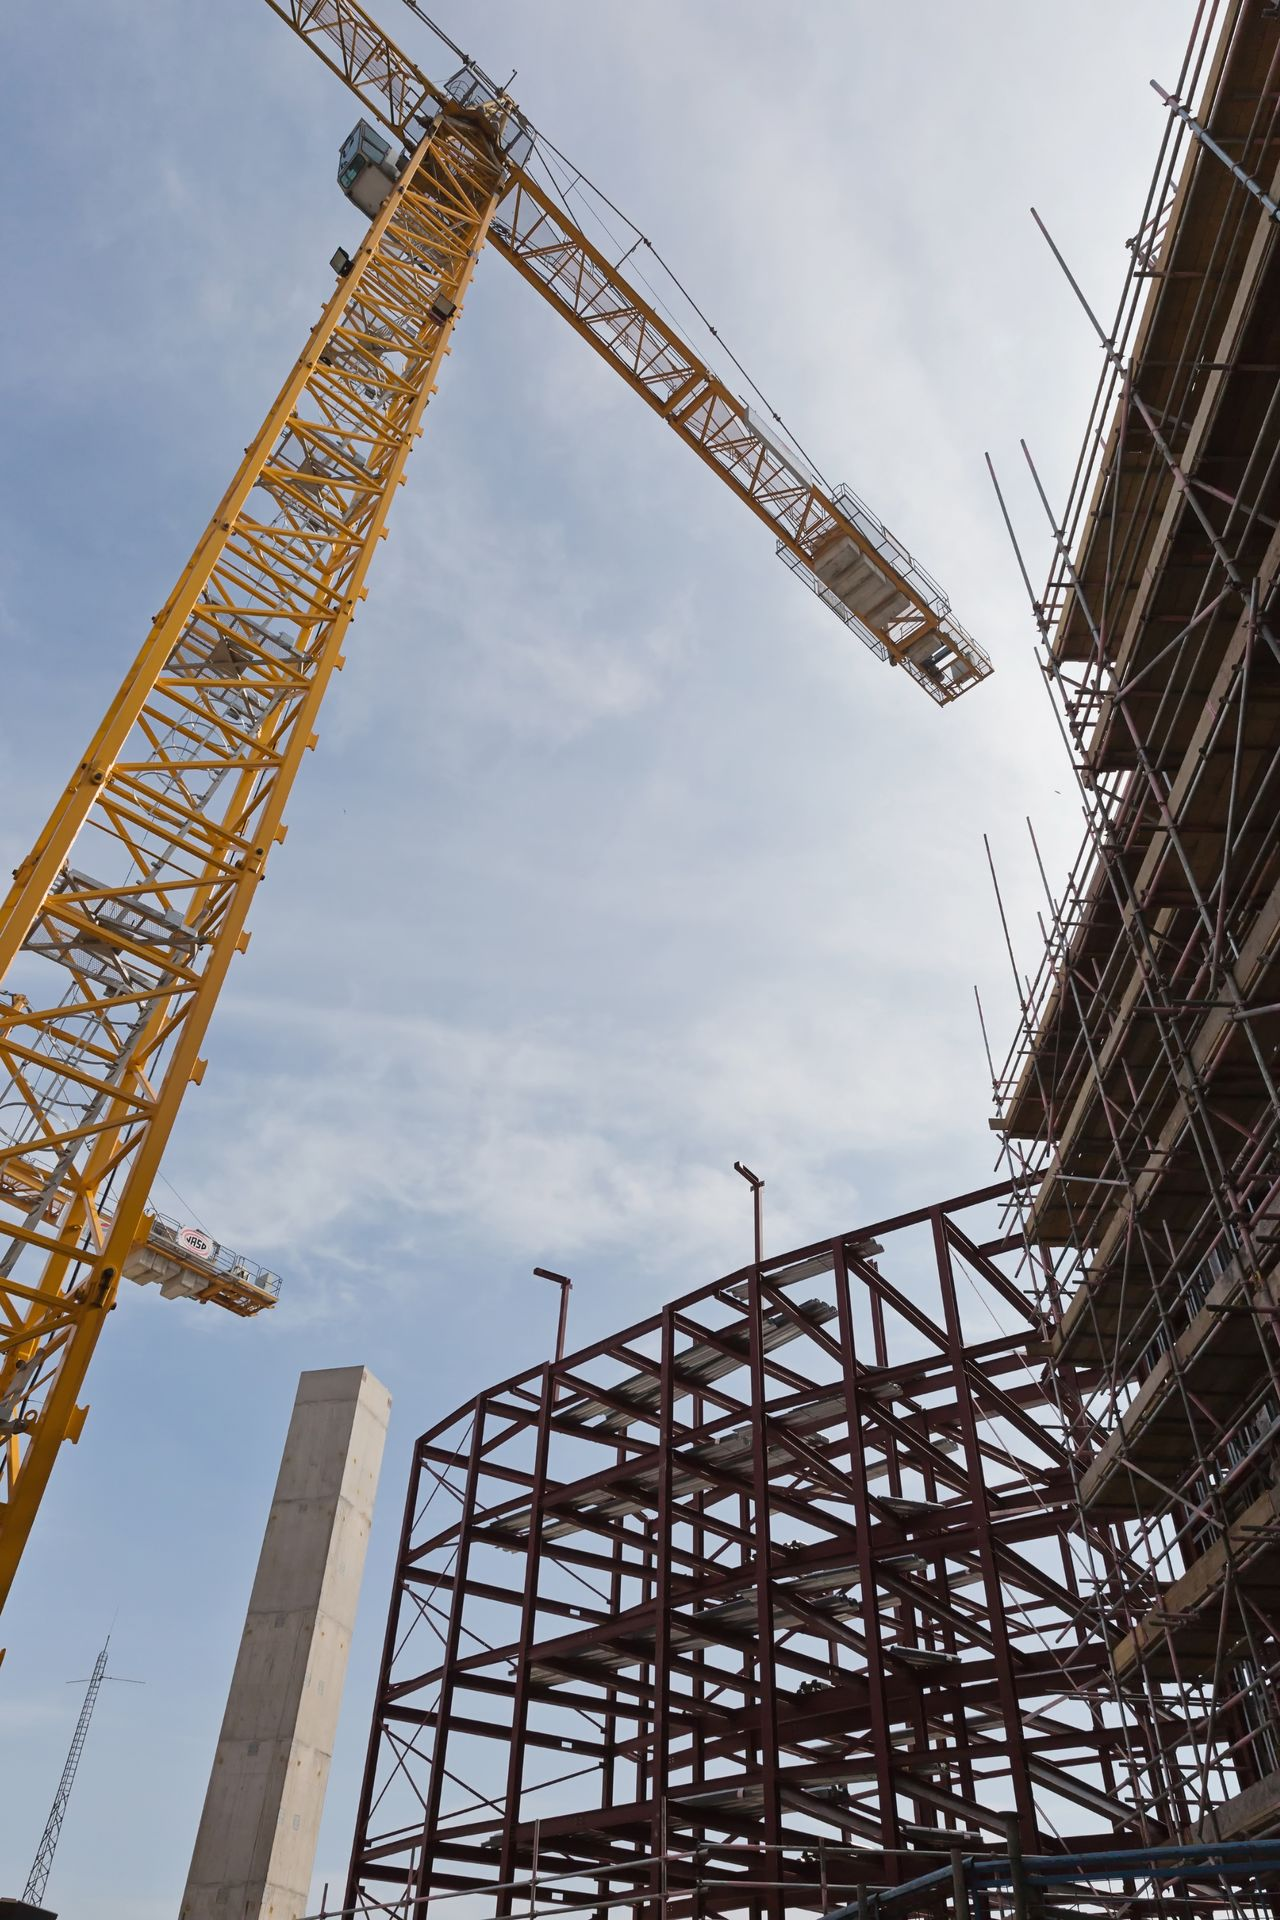 Construction Site Architecture Building Exterior Built Structure Construction Construction Frame Construction Machinery Construction Site Crane Crane - Construction Machinery Day Development Girder Industry Low Angle View Metal No People Outdoors Progress Sky Technology